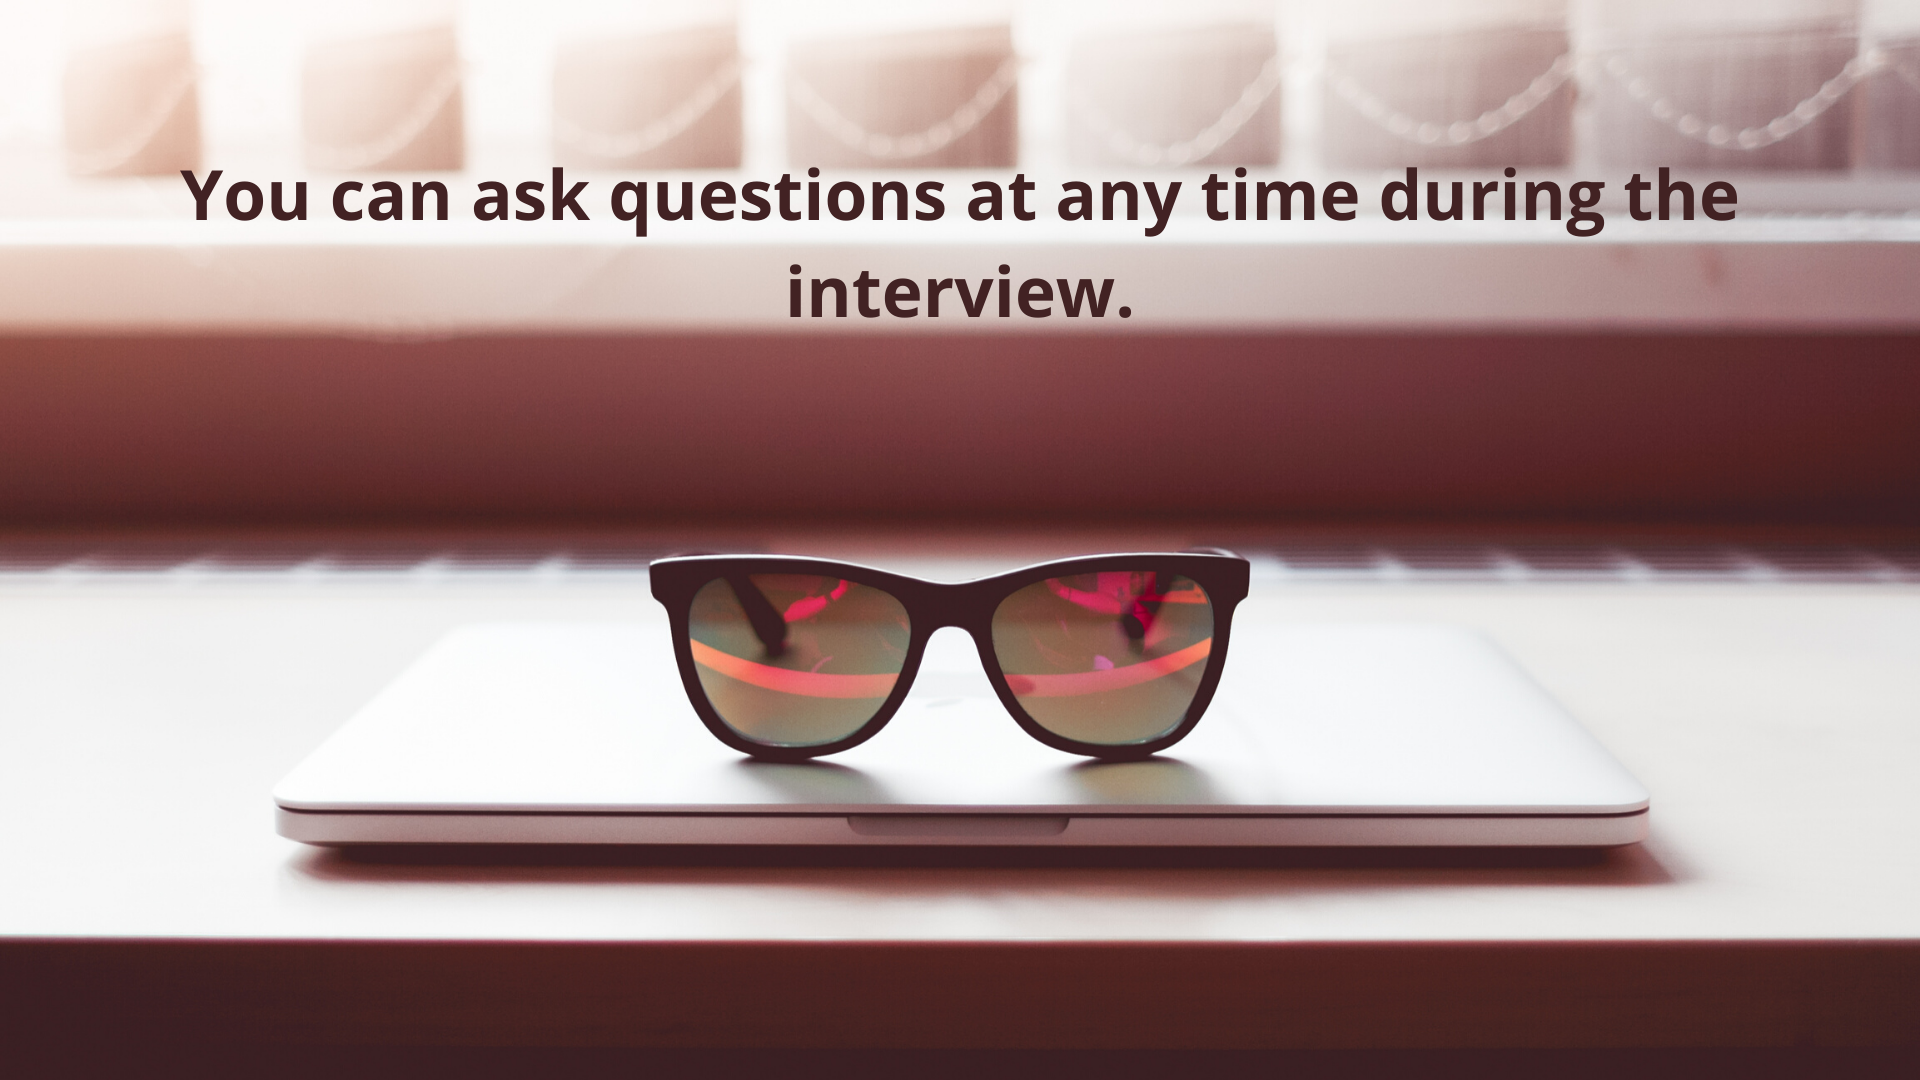 4 New Powerful Questions To Ask During A Job Interview (And A POWERFUL Strategy)